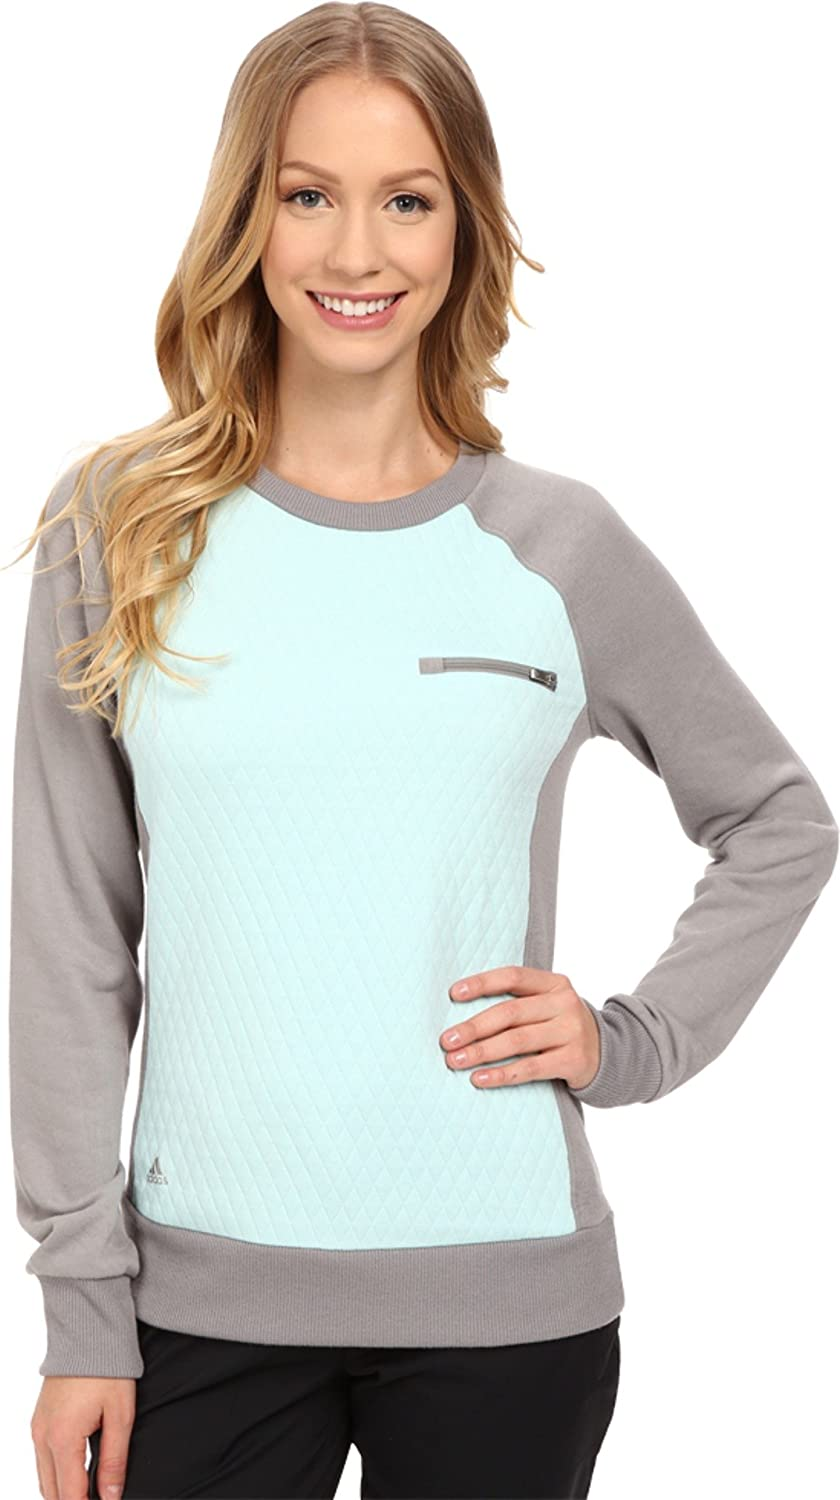 adidas Golf Women's Max 83% OFF Essentials Crew Quilted Shirt Animer and price revision